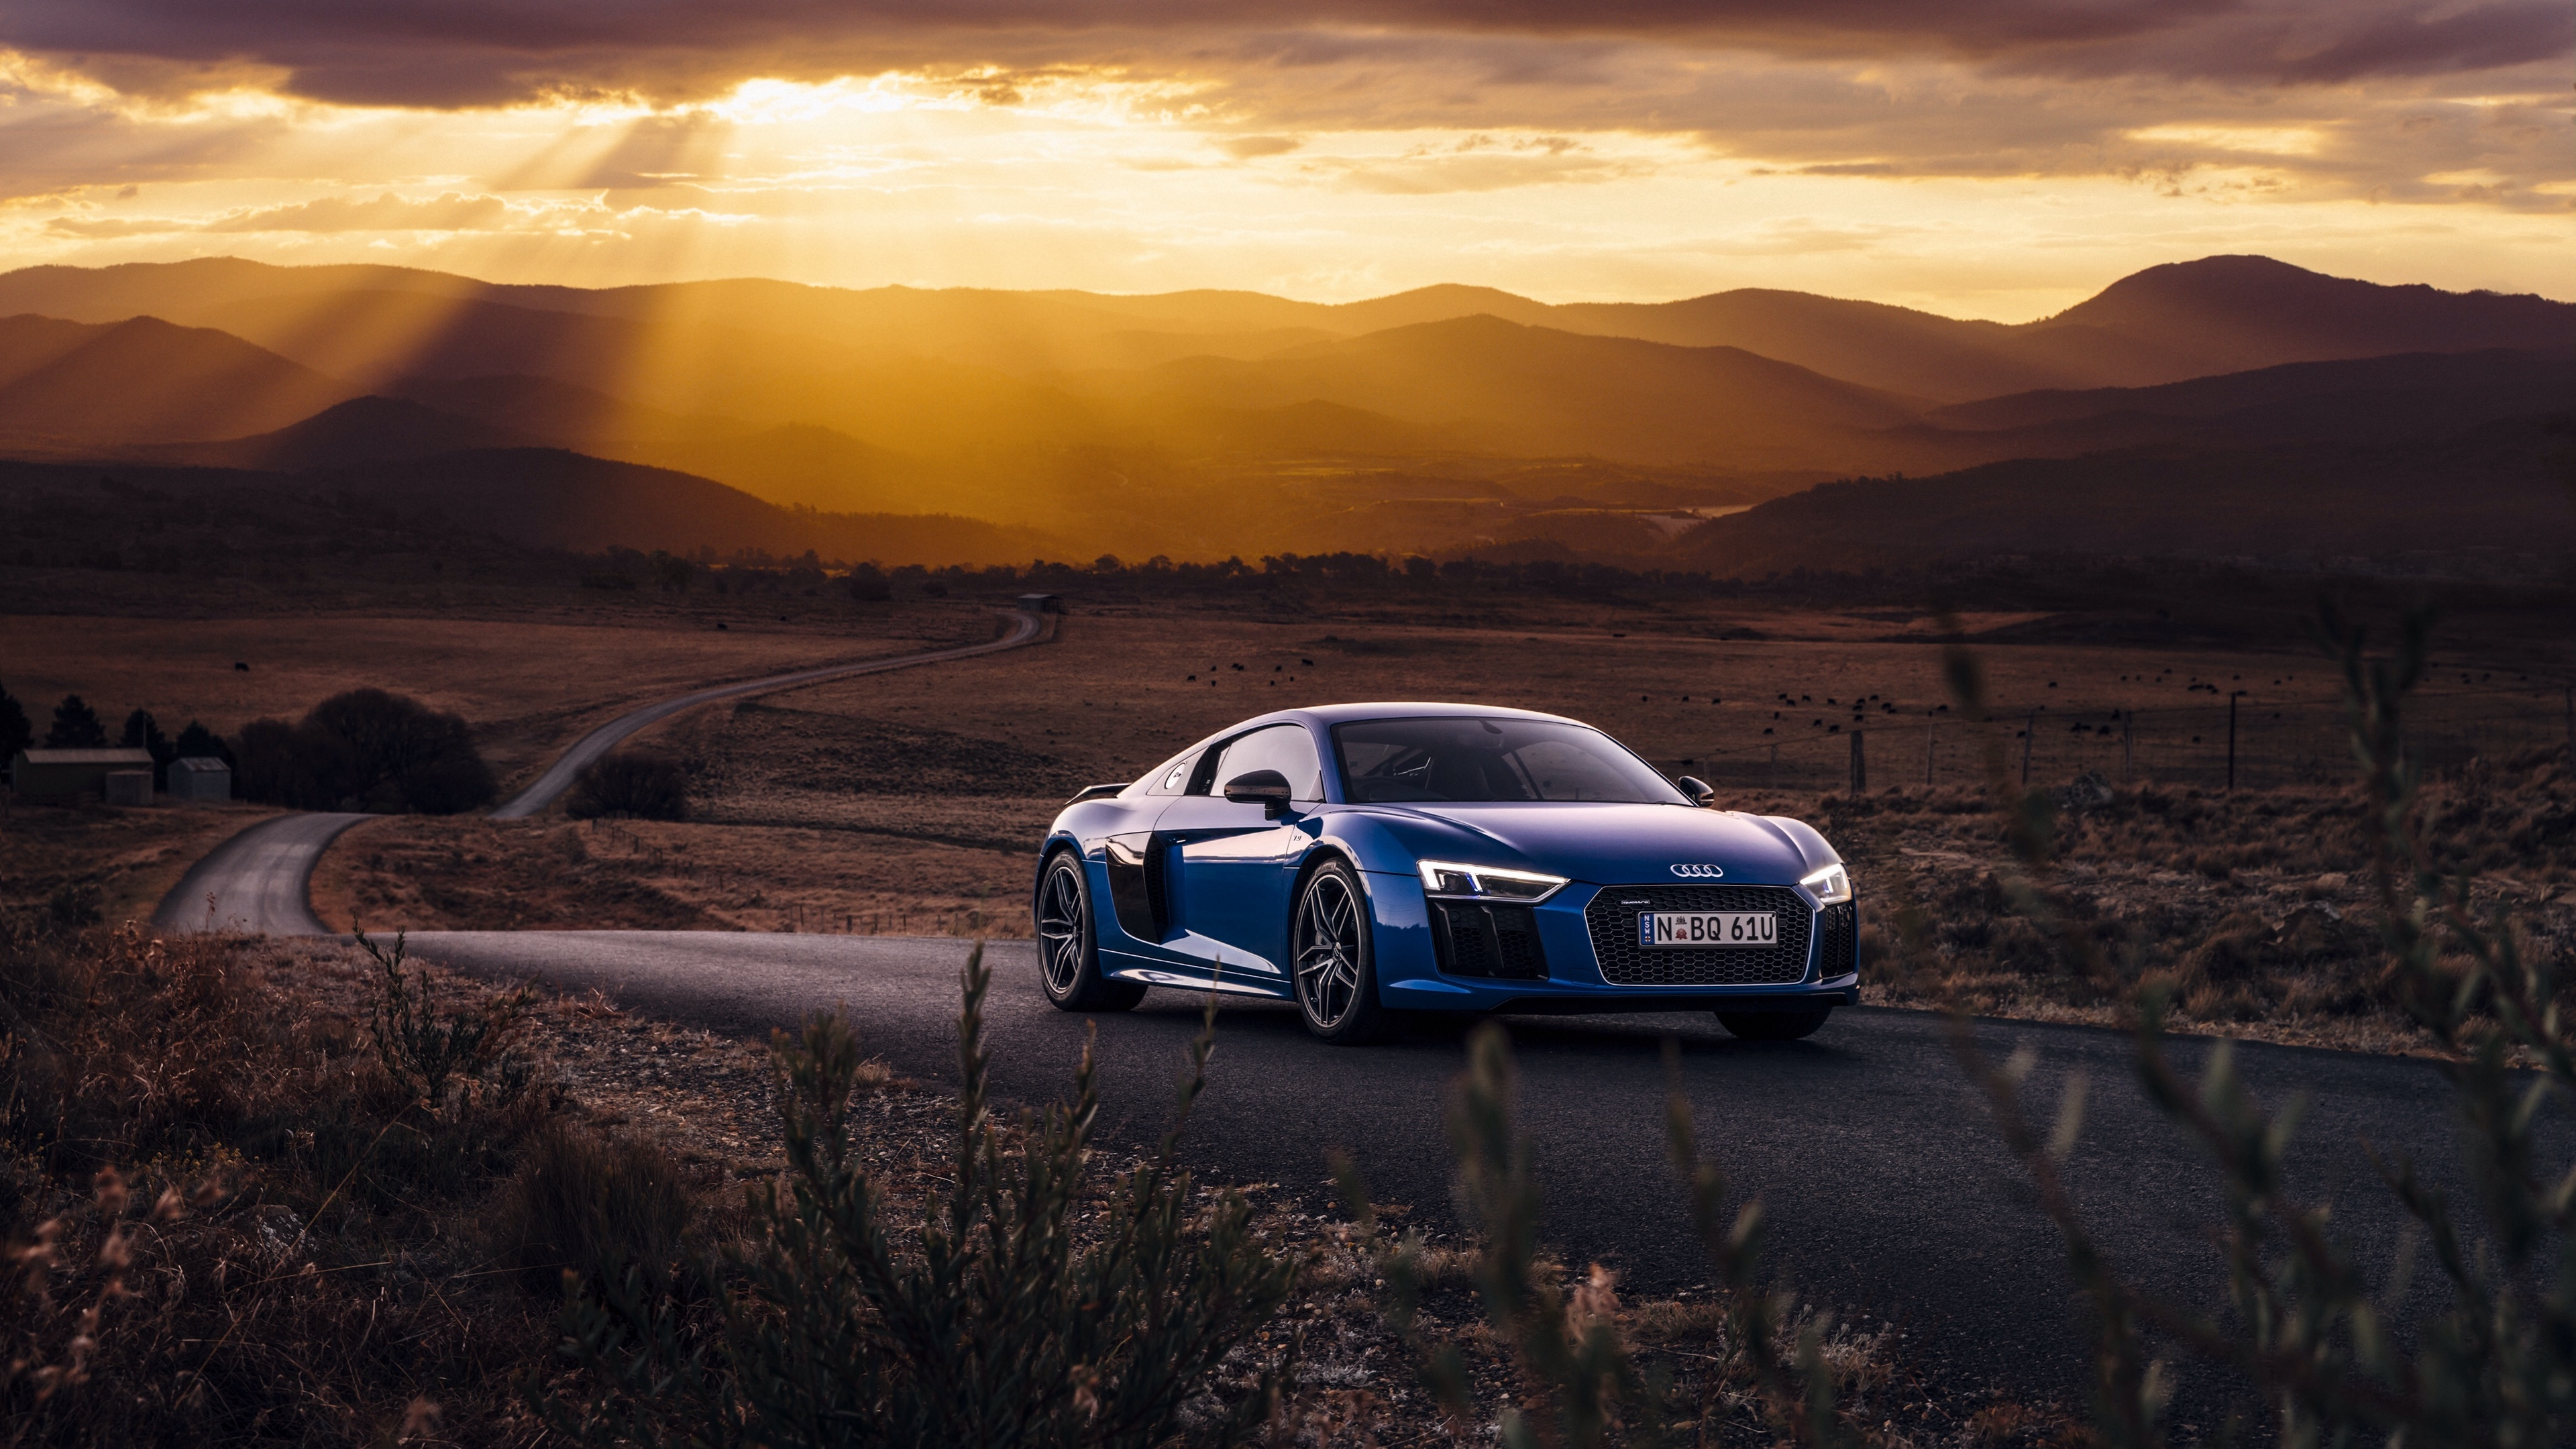 audi r8 v10 side view road 4k 1538937119 - audi, r8, v10, side view, road 4k - V10, r8, Audi